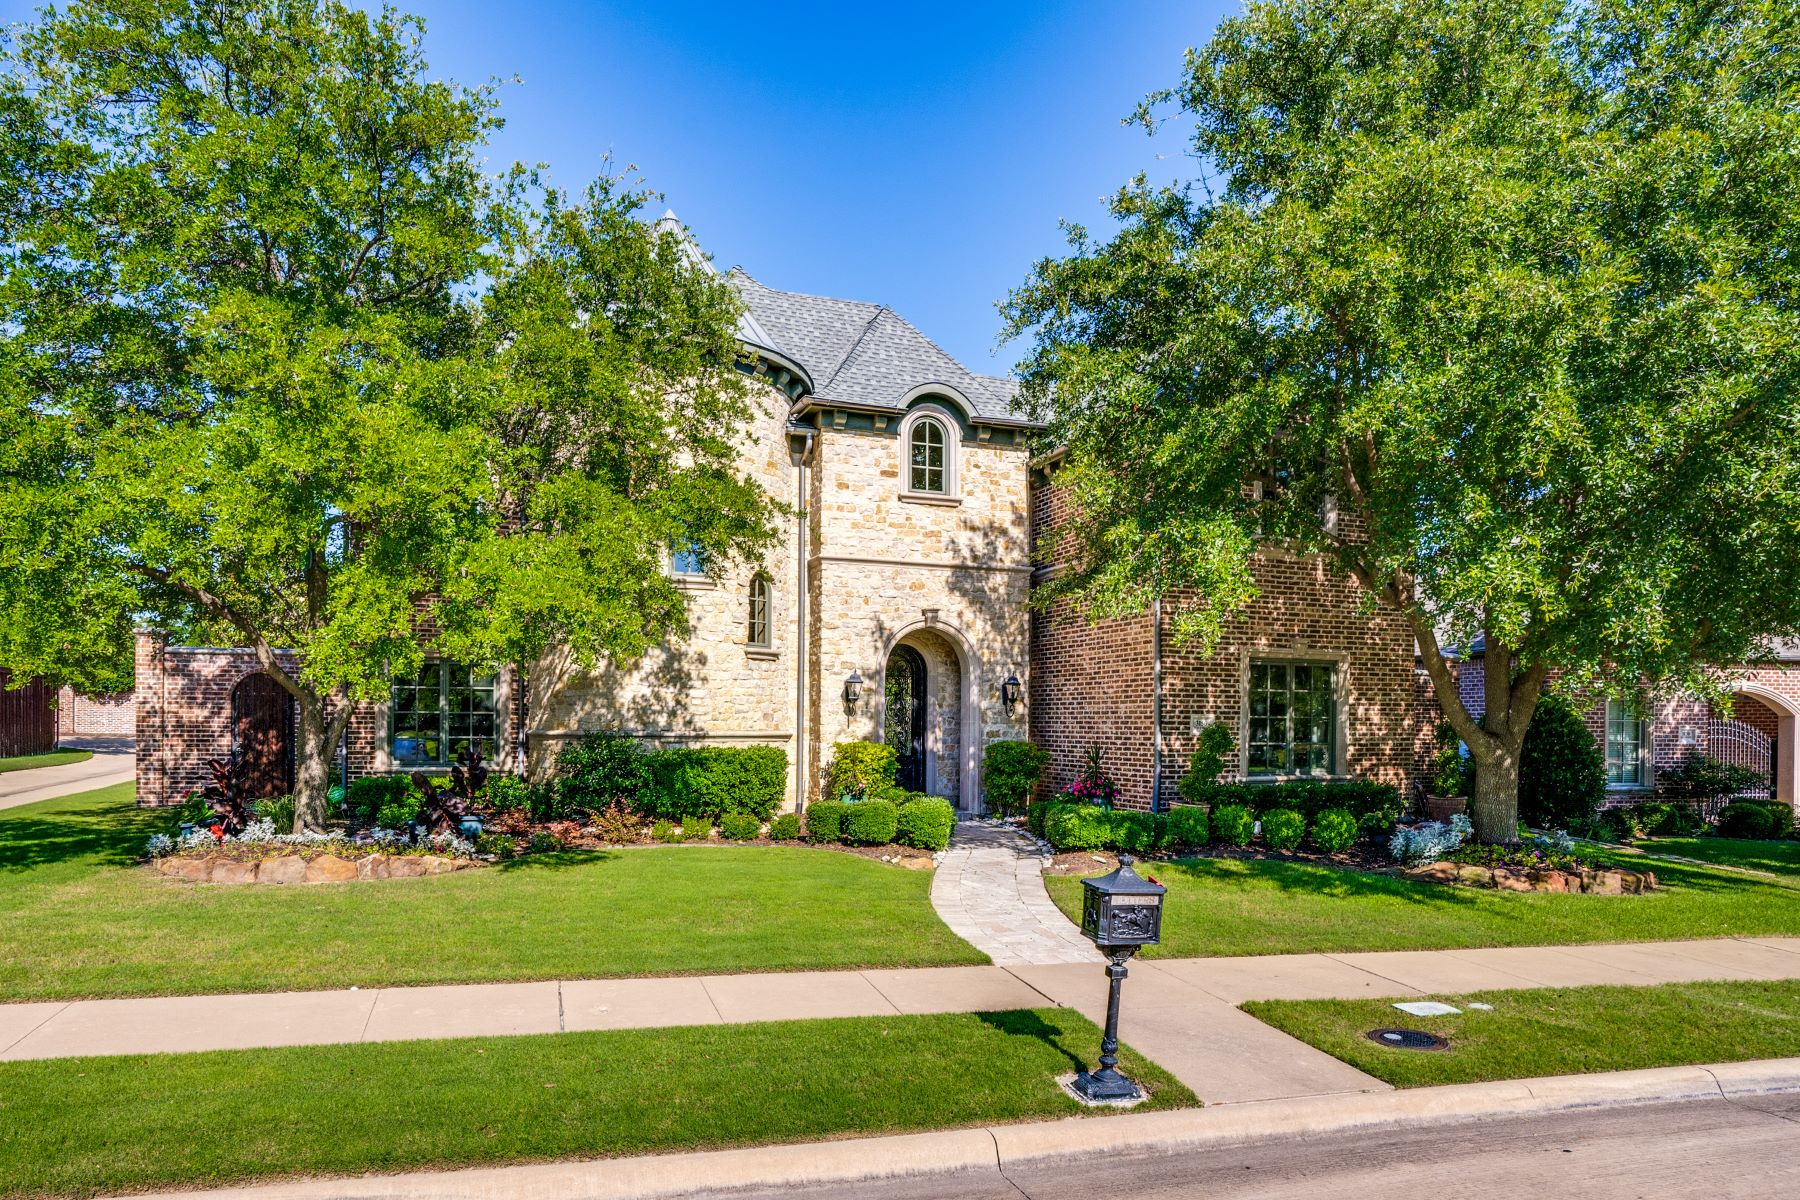 Single Family Homes for Sale at Villages of Stonebriar Park 3156 Briarwood Lane Frisco, Texas 75034 United States